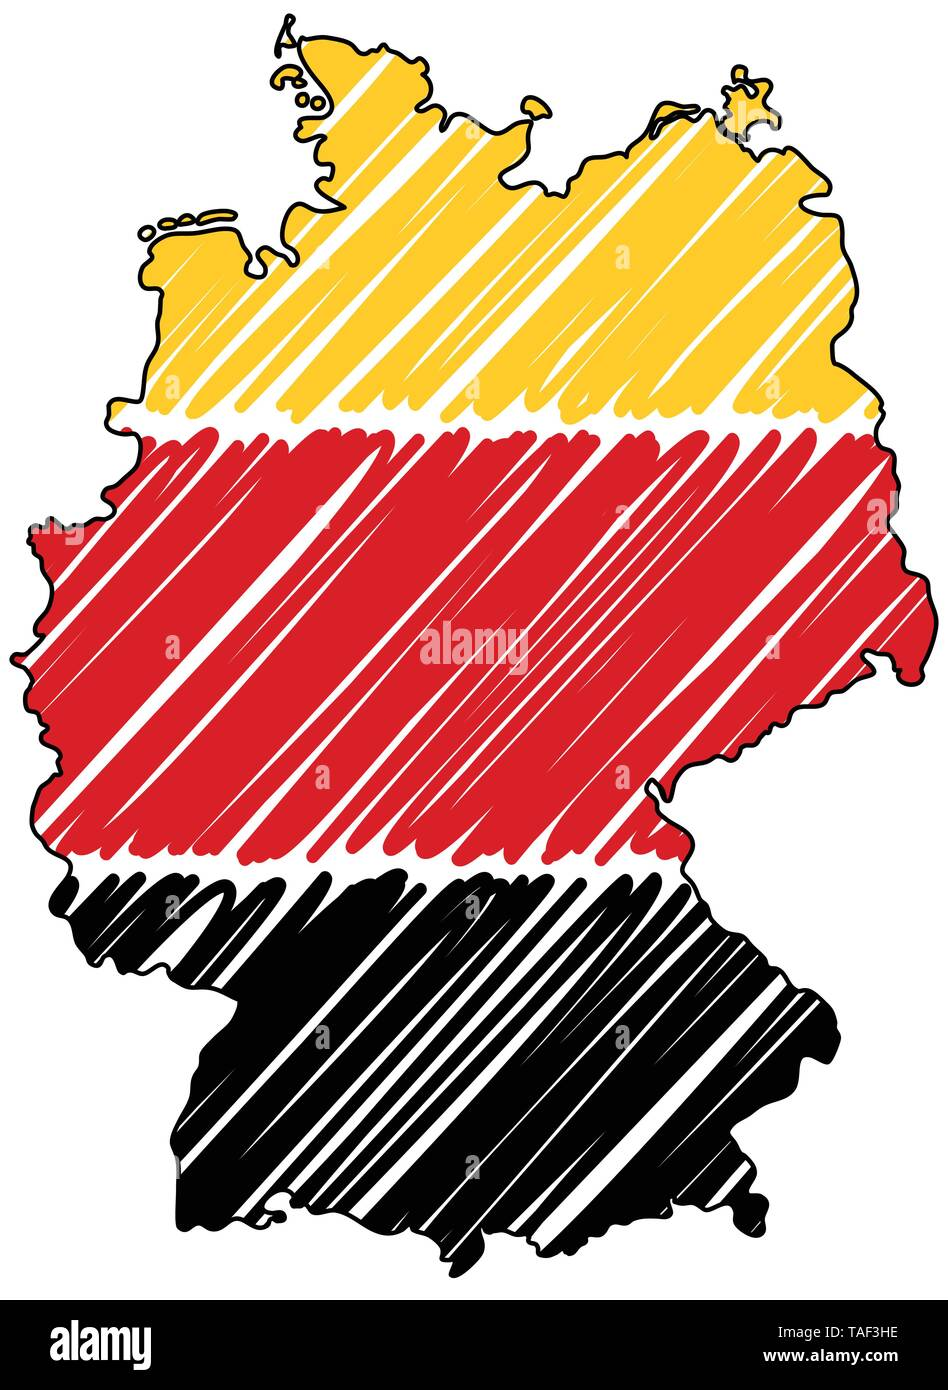 Germany map hand drawn sketch. Vector concept illustration flag, childrens drawing, scribble map. Country map for infographic, brochures and presentat - Stock Image